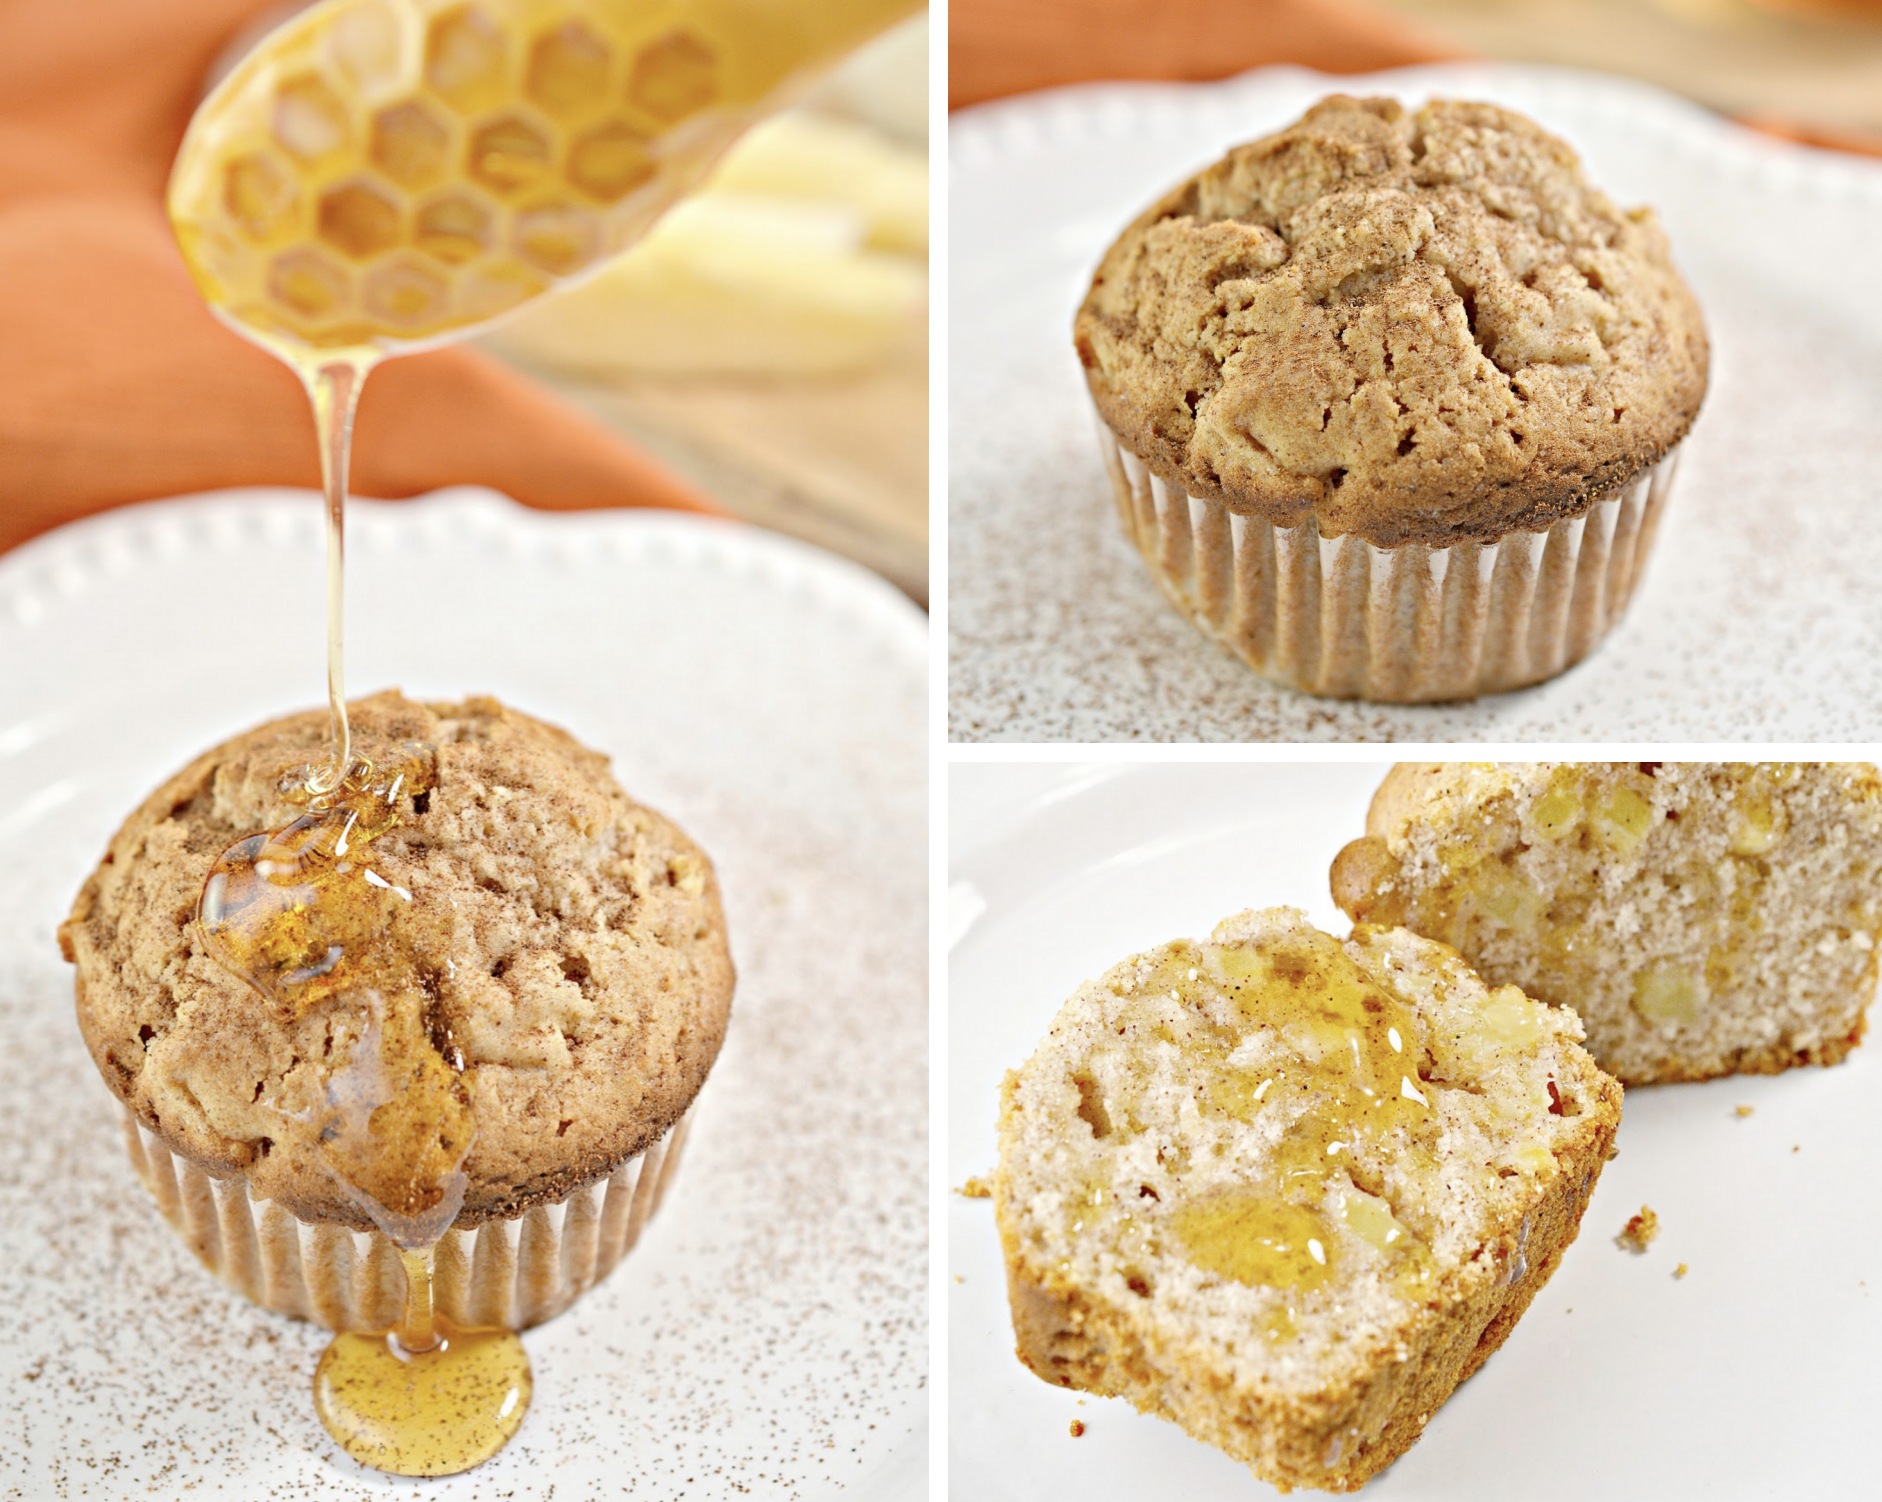 These Honey Apple Muffins will kick your mornings off to a great start! They're incredibly moist and full of yummy cinnamon, honey and apple flavor!